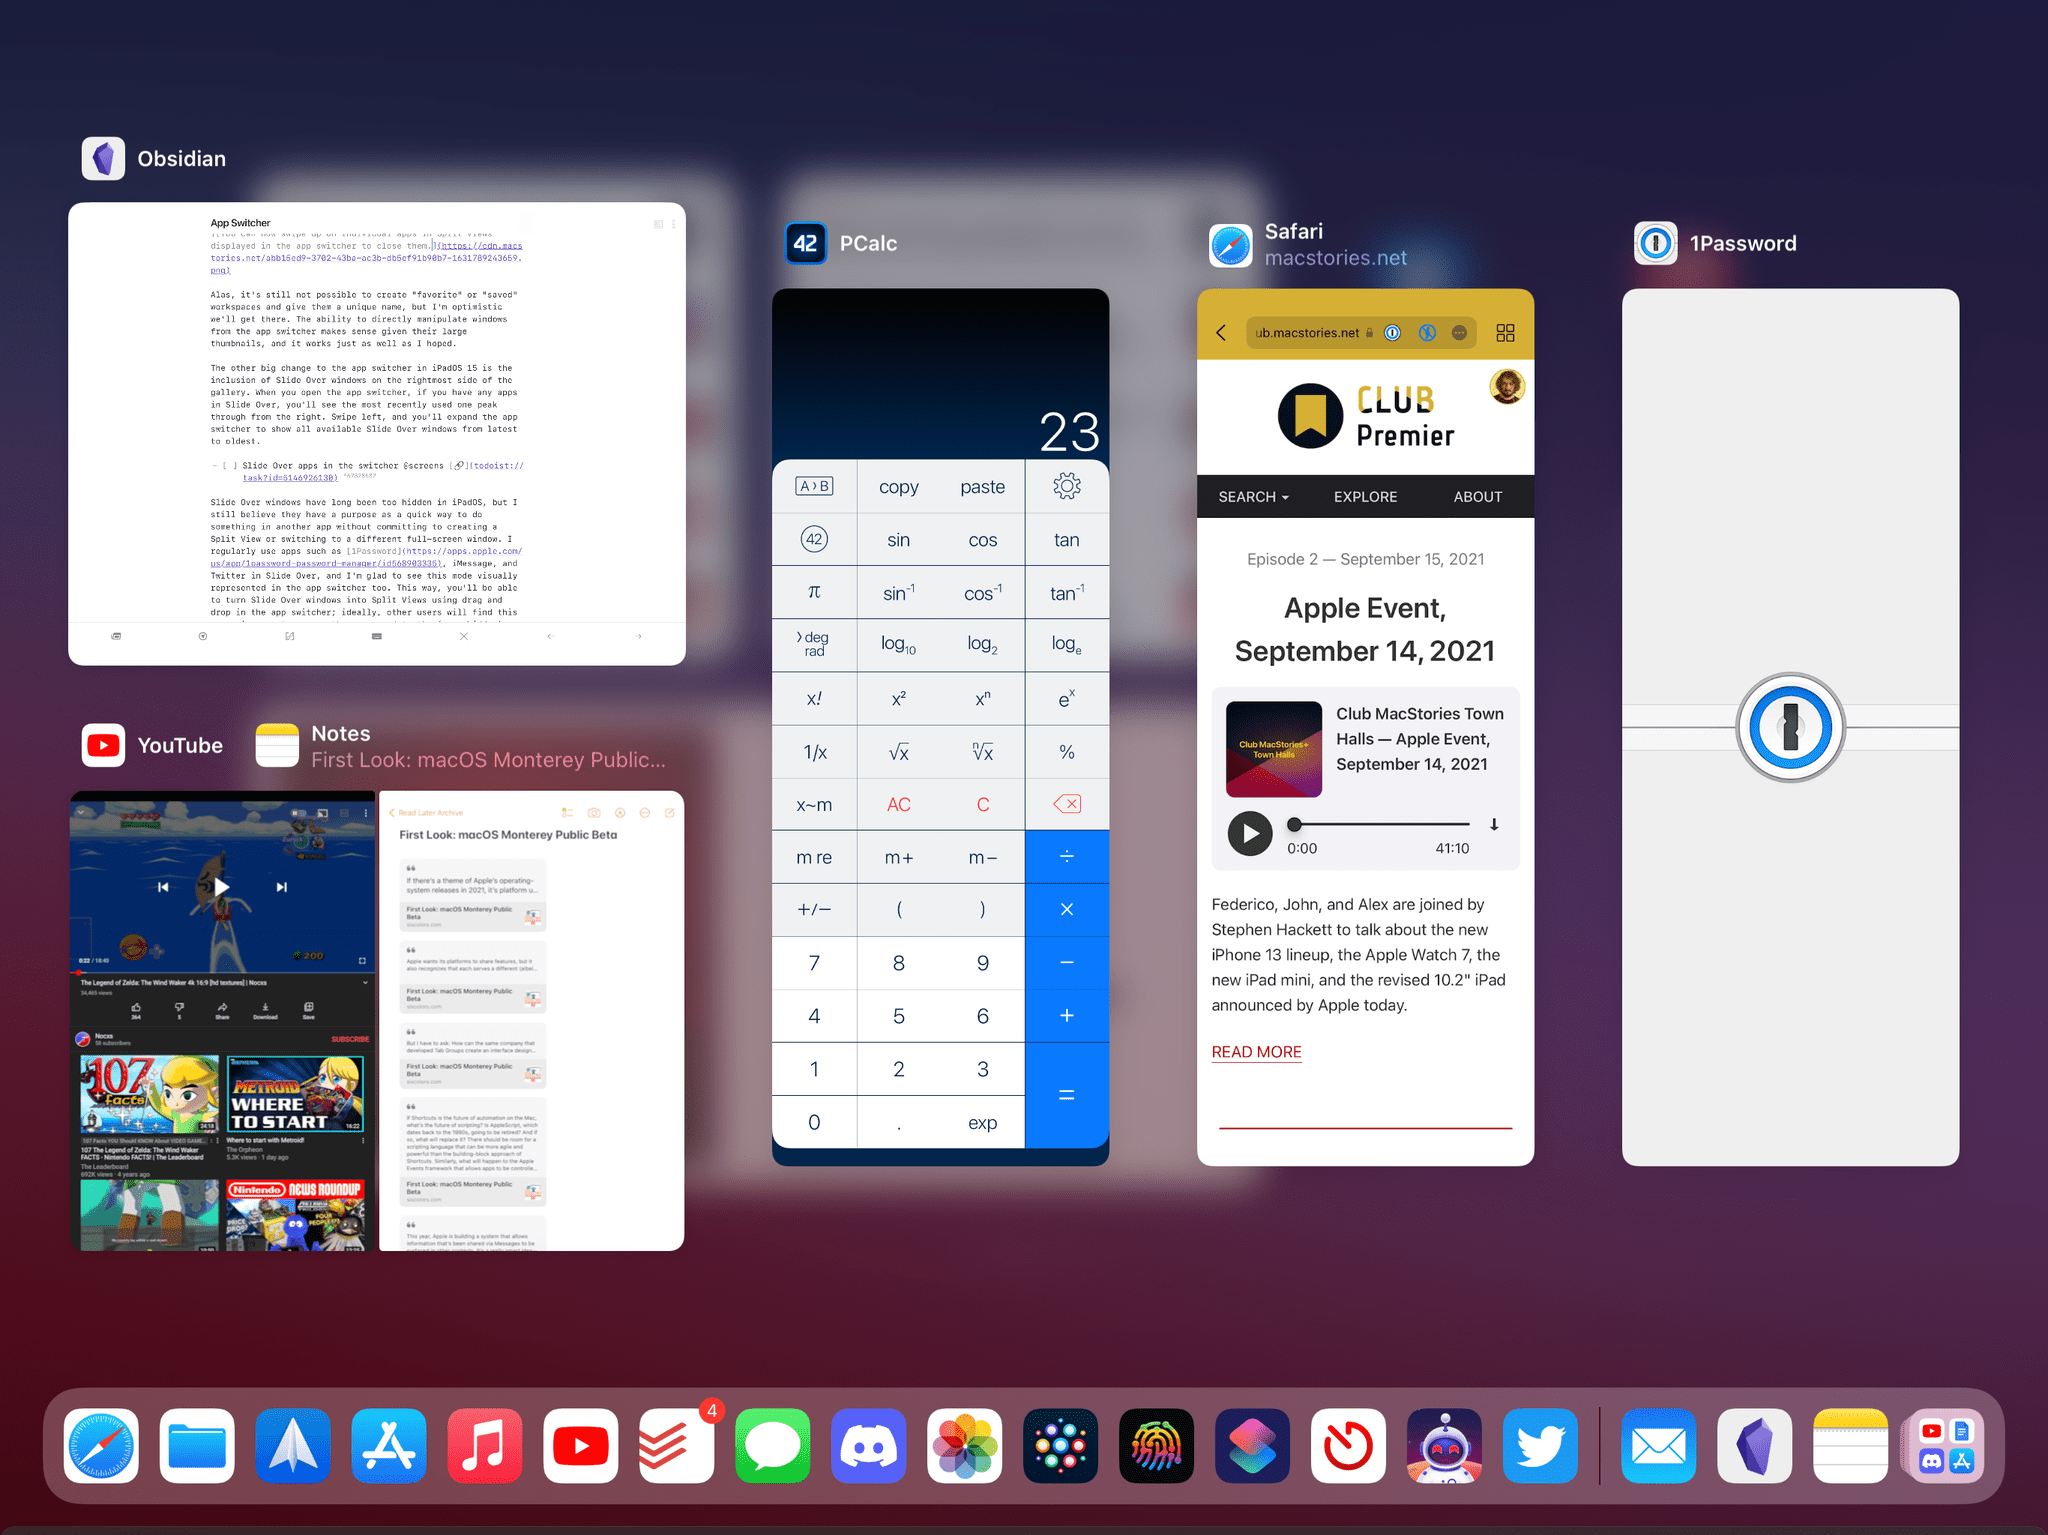 You can now see all Slide Over apps in the app switcher.